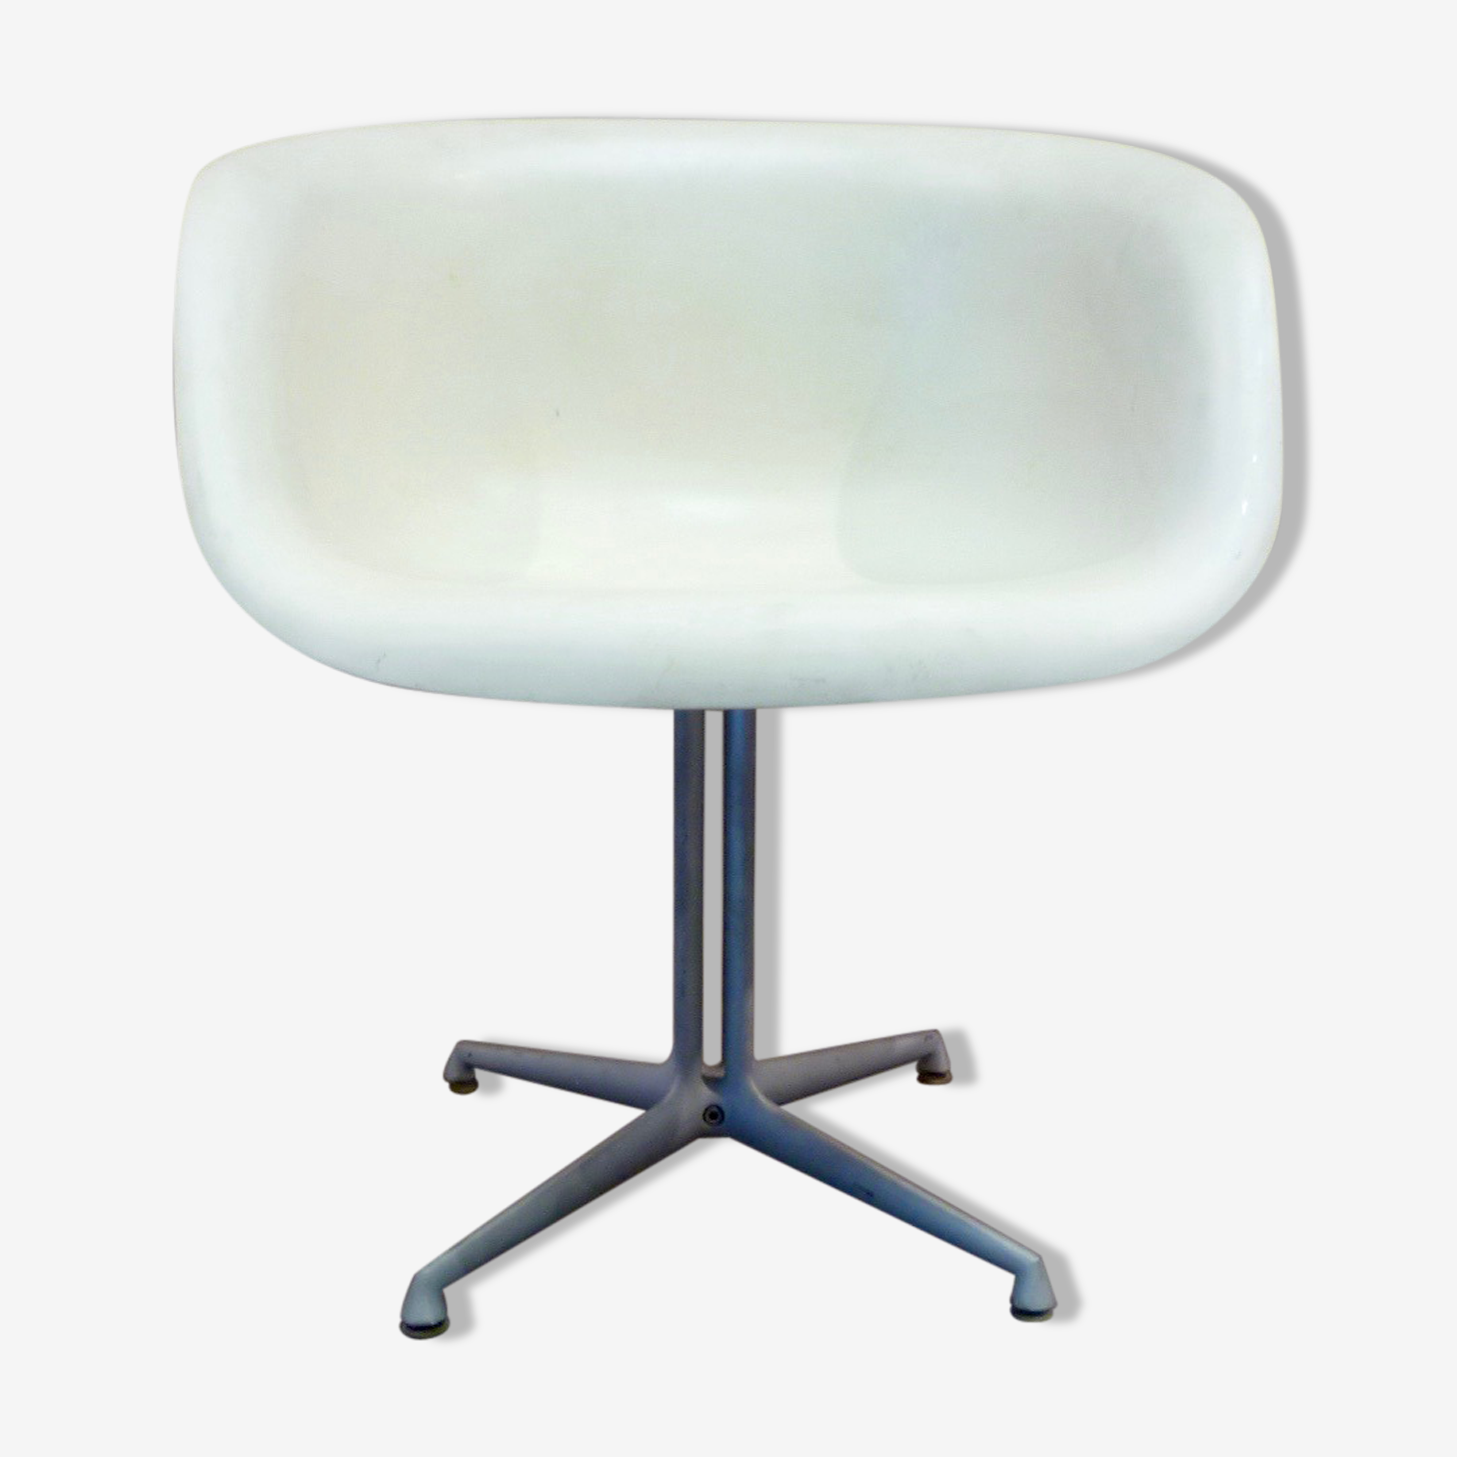 Fauteuil Charles et Ray Eames and Girard pour Herman Miller 1961